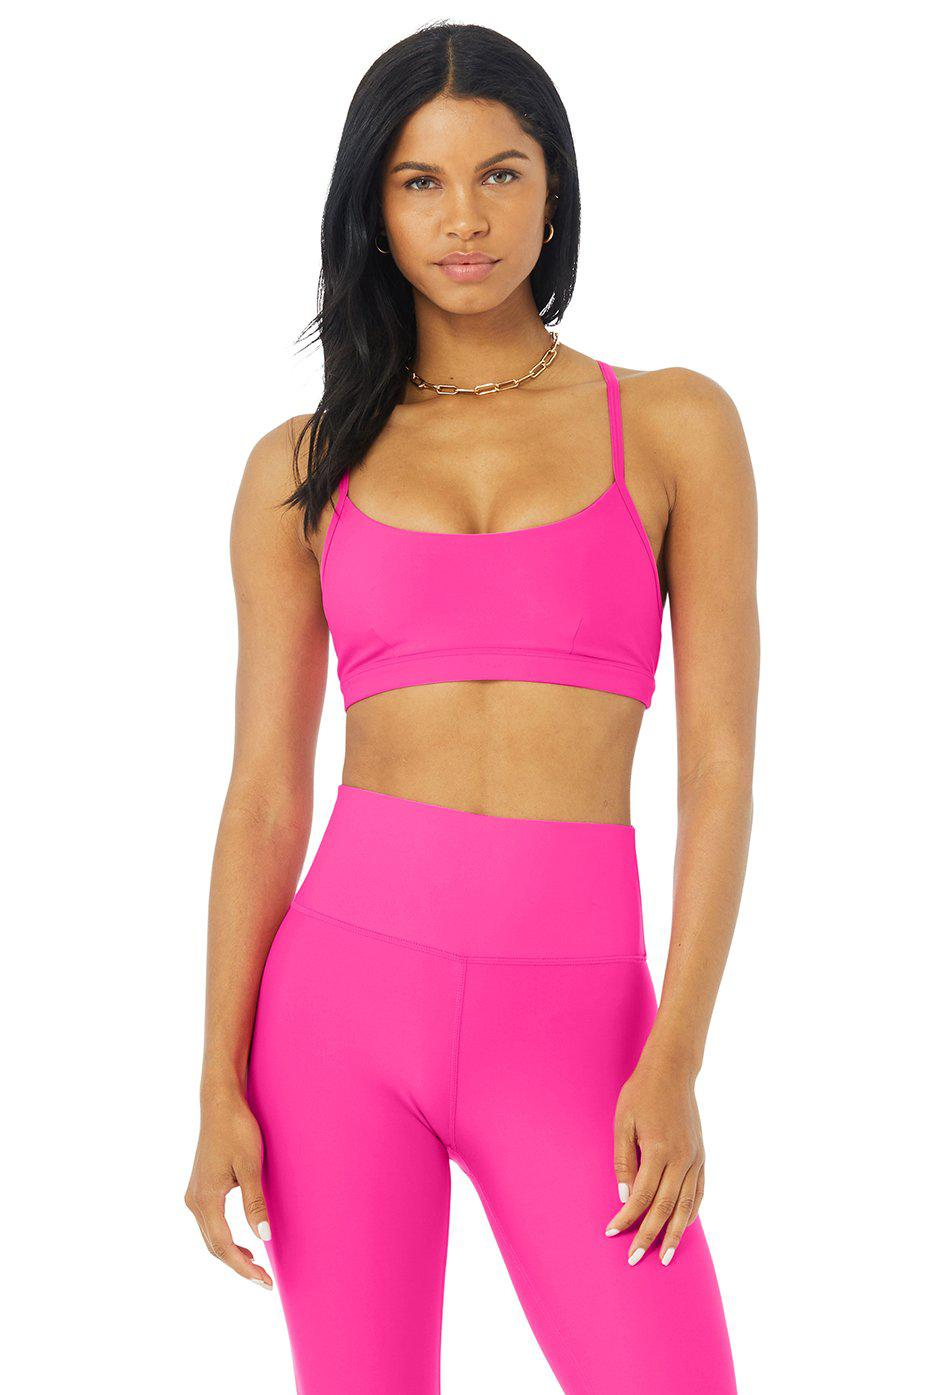 Airlift Intrigue Bra - Neon Pink